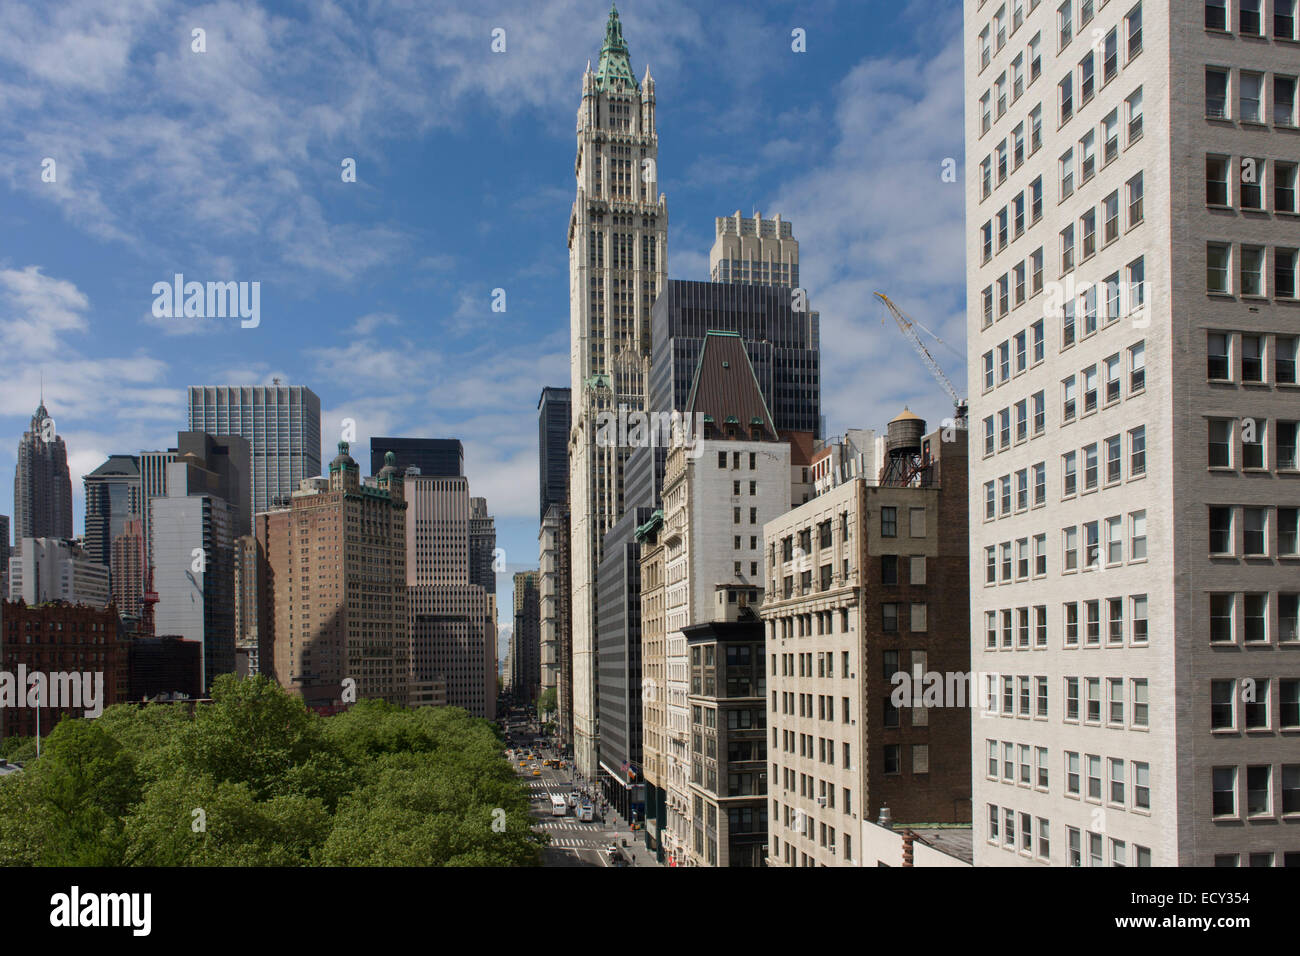 Wide cityscape of skyscrapers looking across Broadway in Manhattan, New York City, with the 1903 Gothic Woolworth - Stock Image